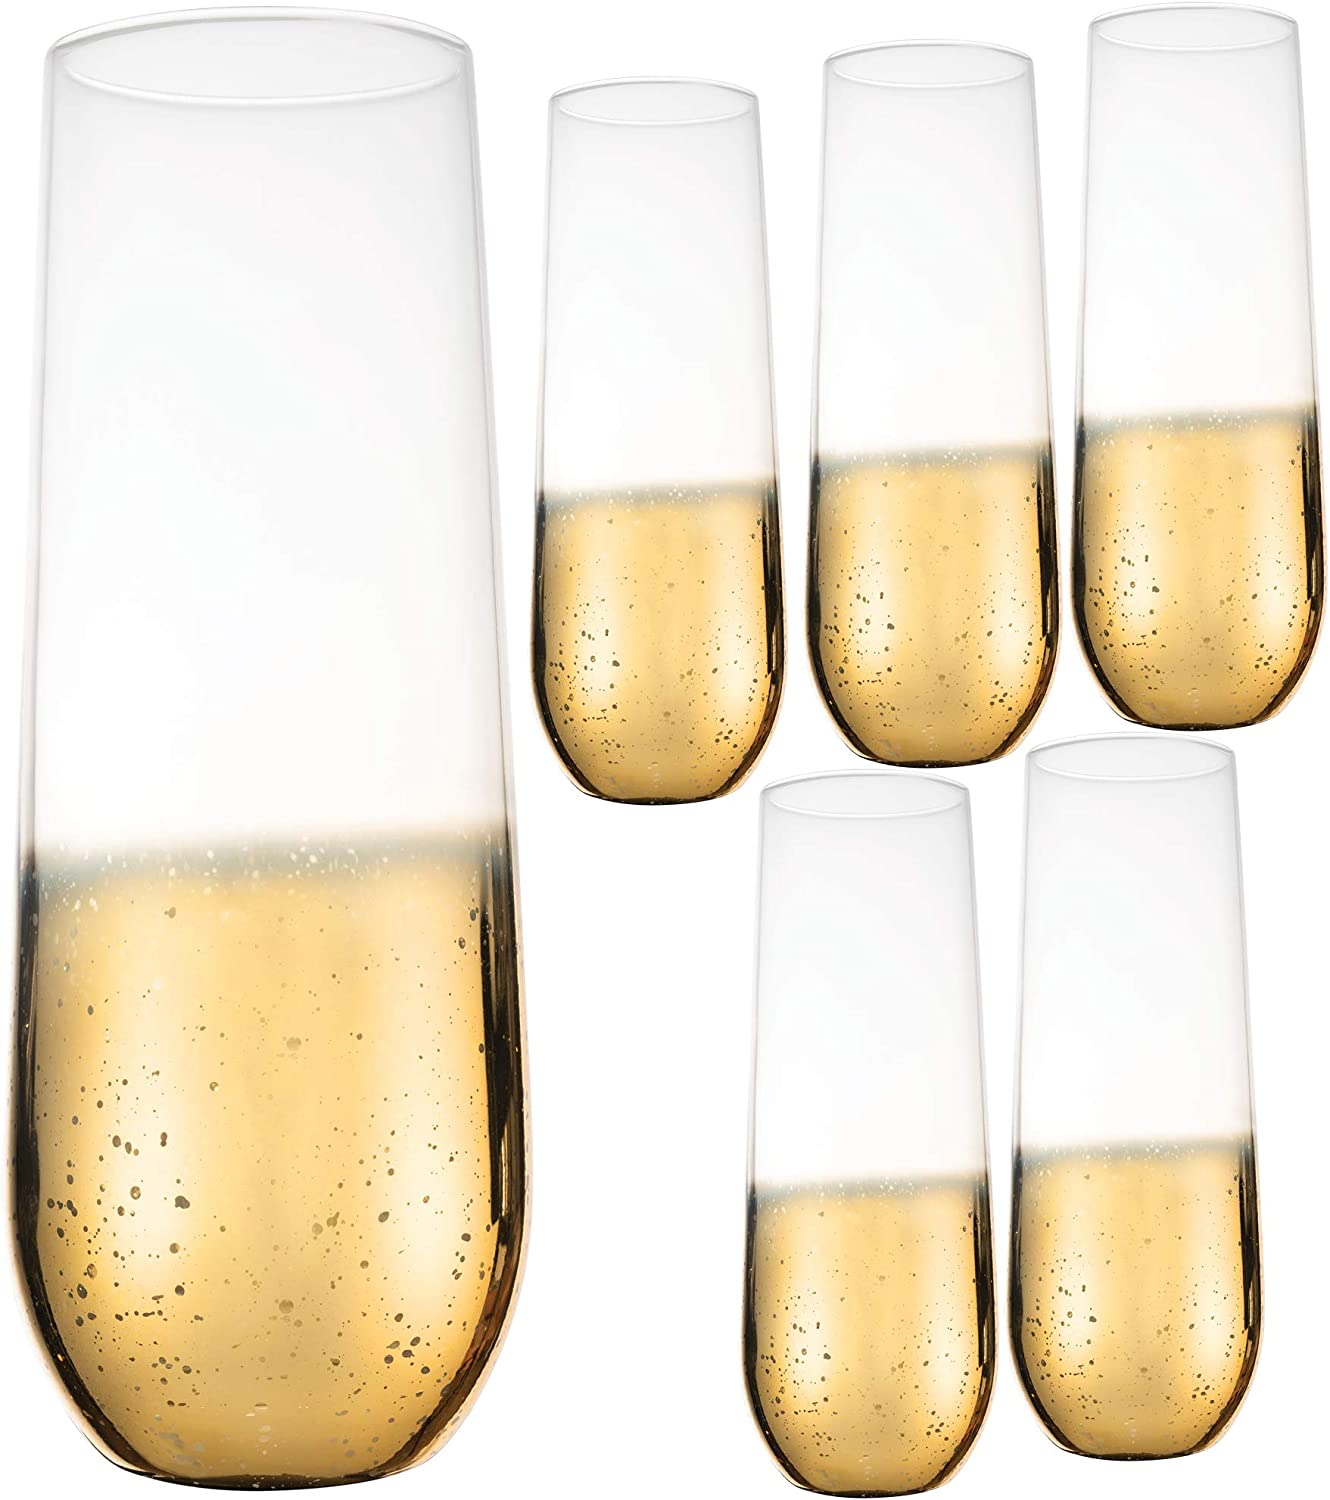 Kitchen Lux 10oz Highball Tumblers - Set of 6 Drinking Glasses - Clear Glass with Gold Rim - Wine, Shots, Cocktails, Champagne, All-Purpose Cups, Elegant Stemless Design, Dishwasher Safe (Gold Base)